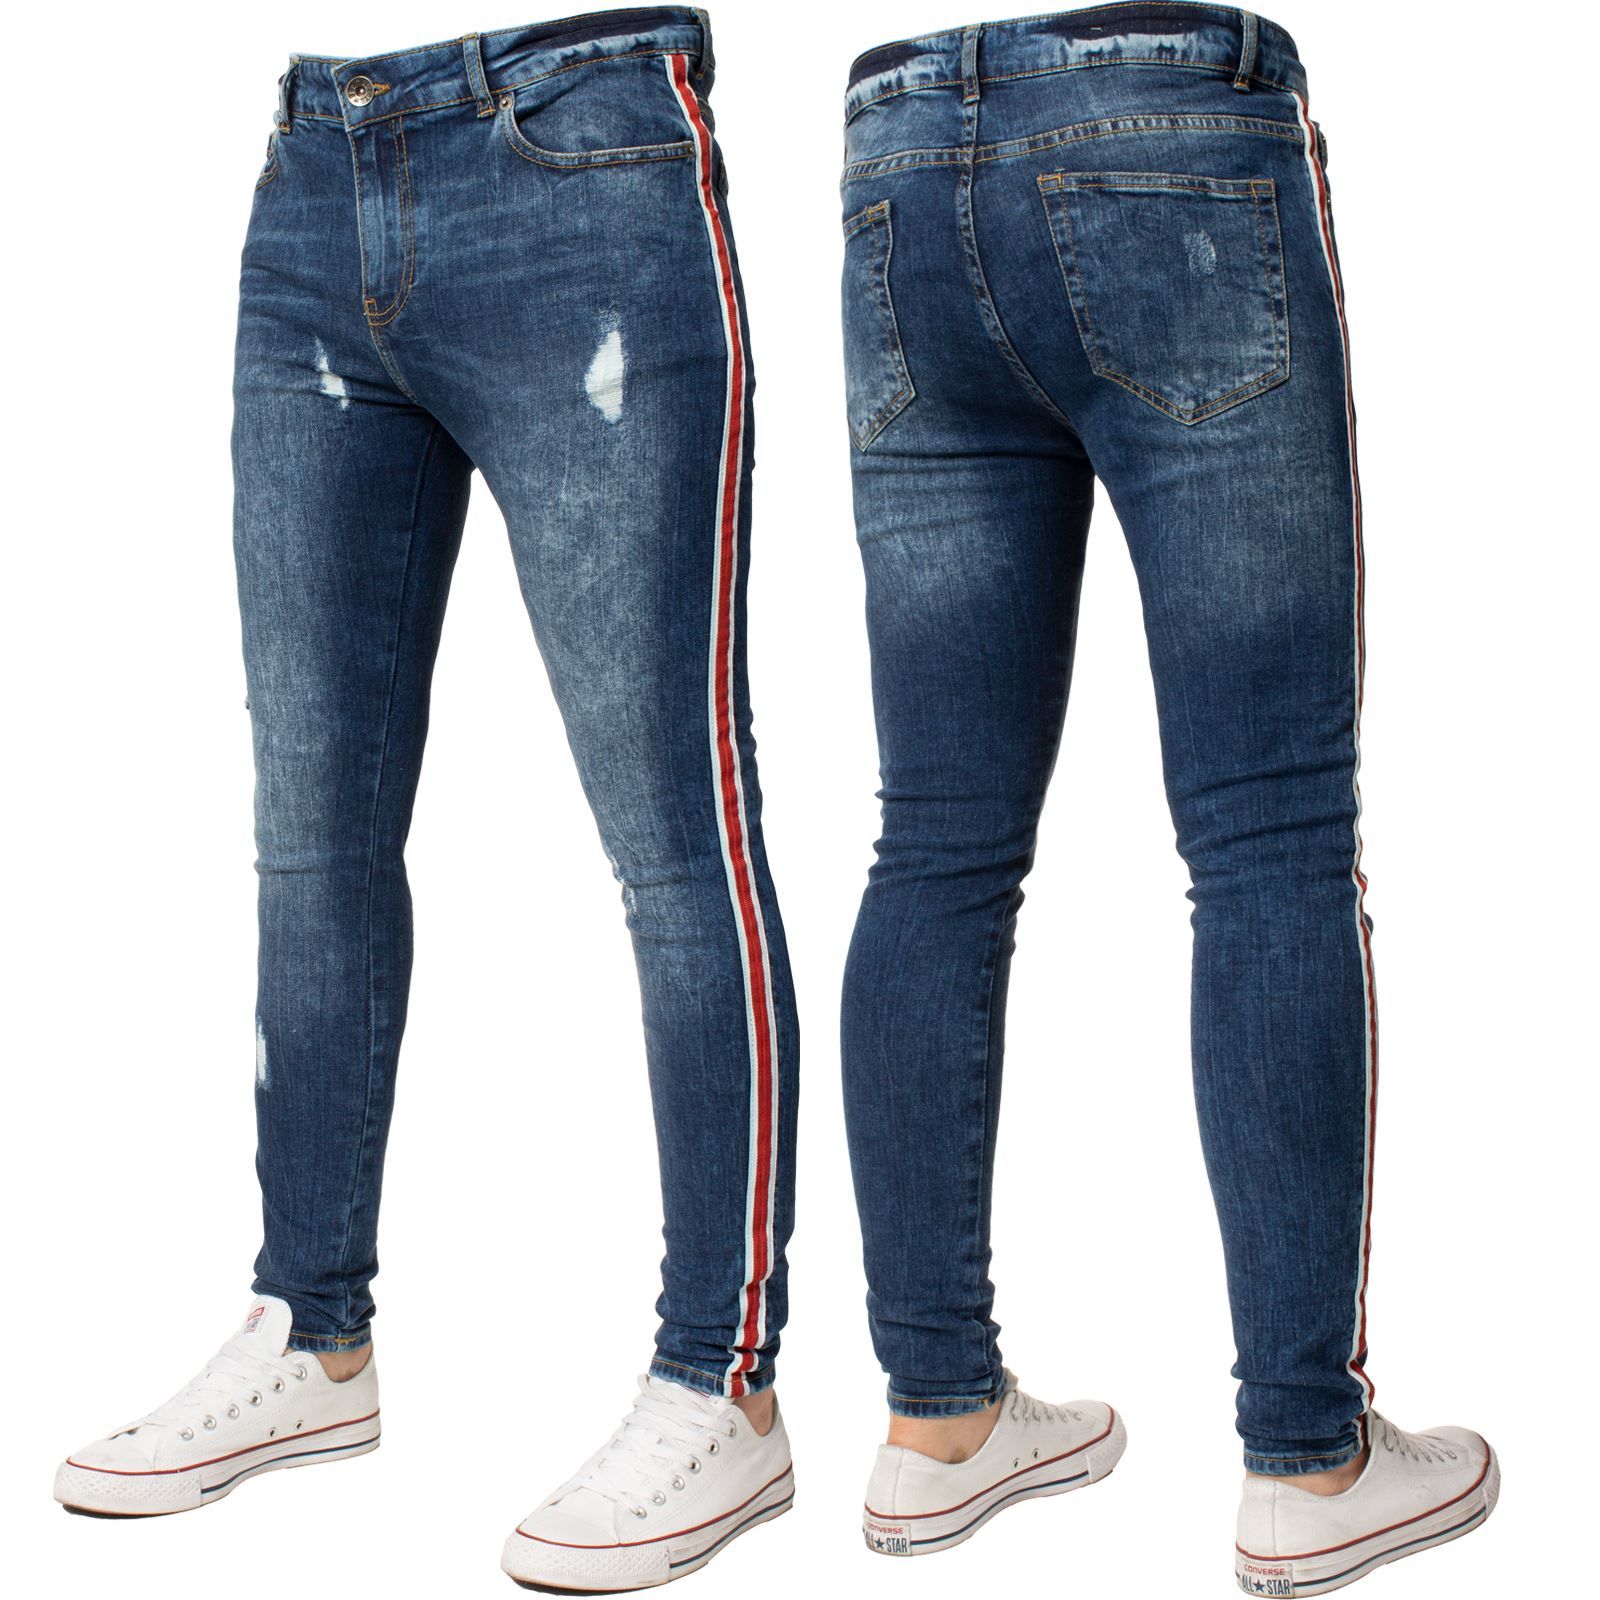 Enzo-Mens-Super-Skinny-Stretch-Blue-Jeans-Ripped-Striped-Designer-Denim-Pants